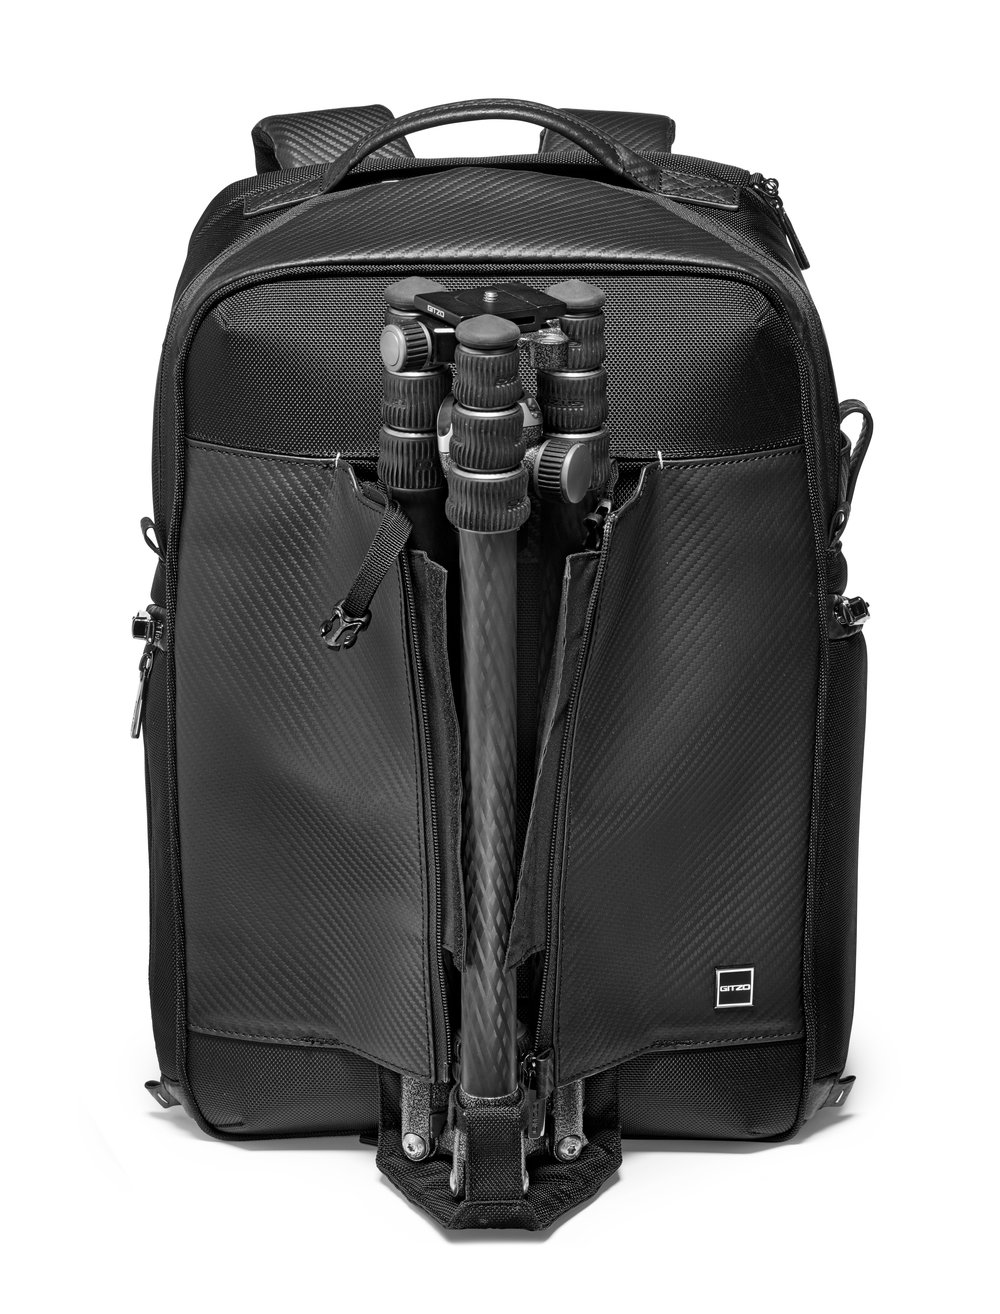 HR-GITZO_camera_bag_GCB100BP_tripod_B_03.jpg